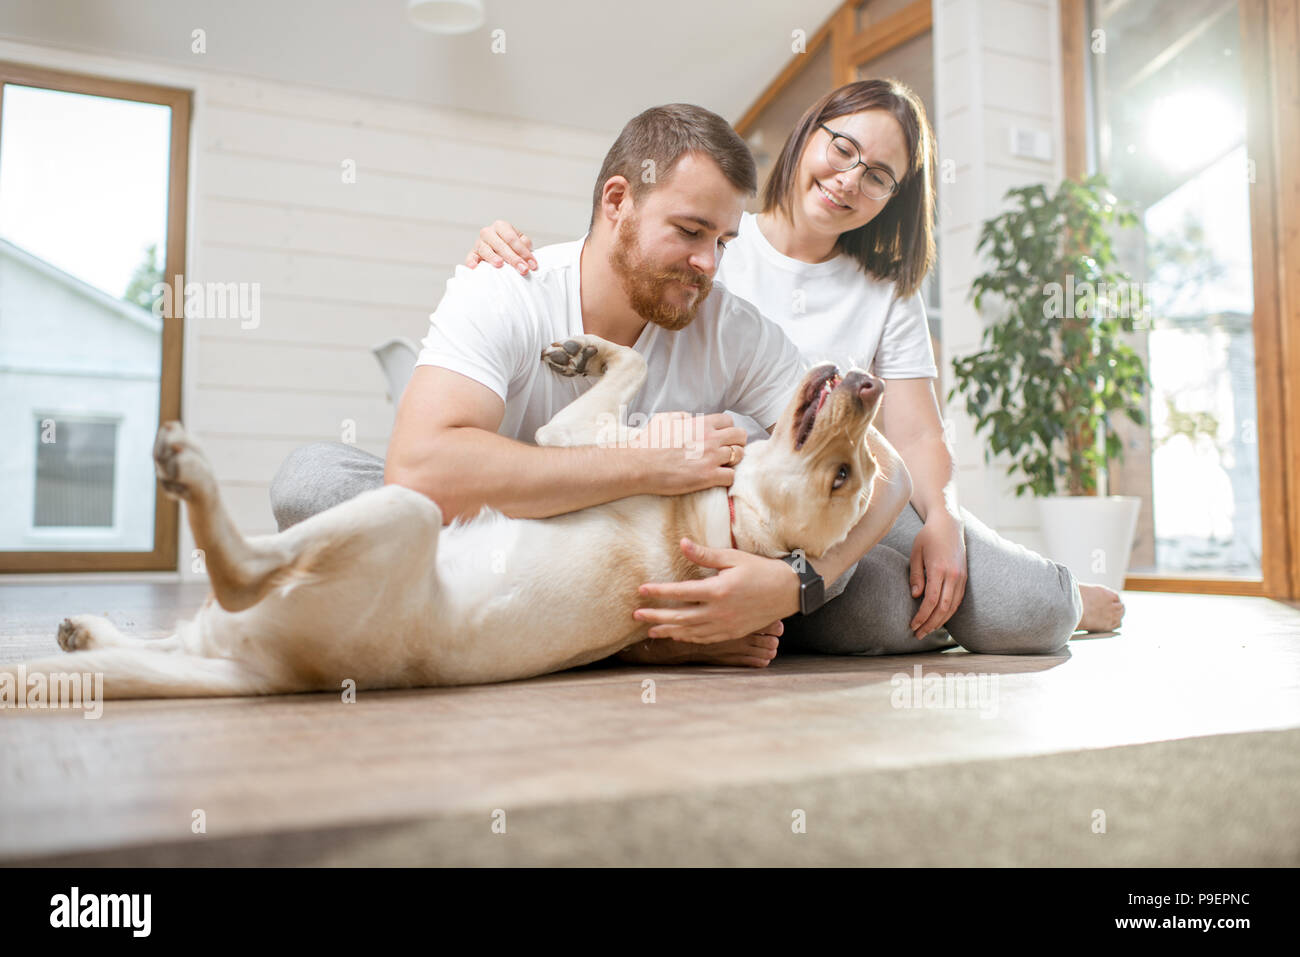 Couple with dog in the house - Stock Image